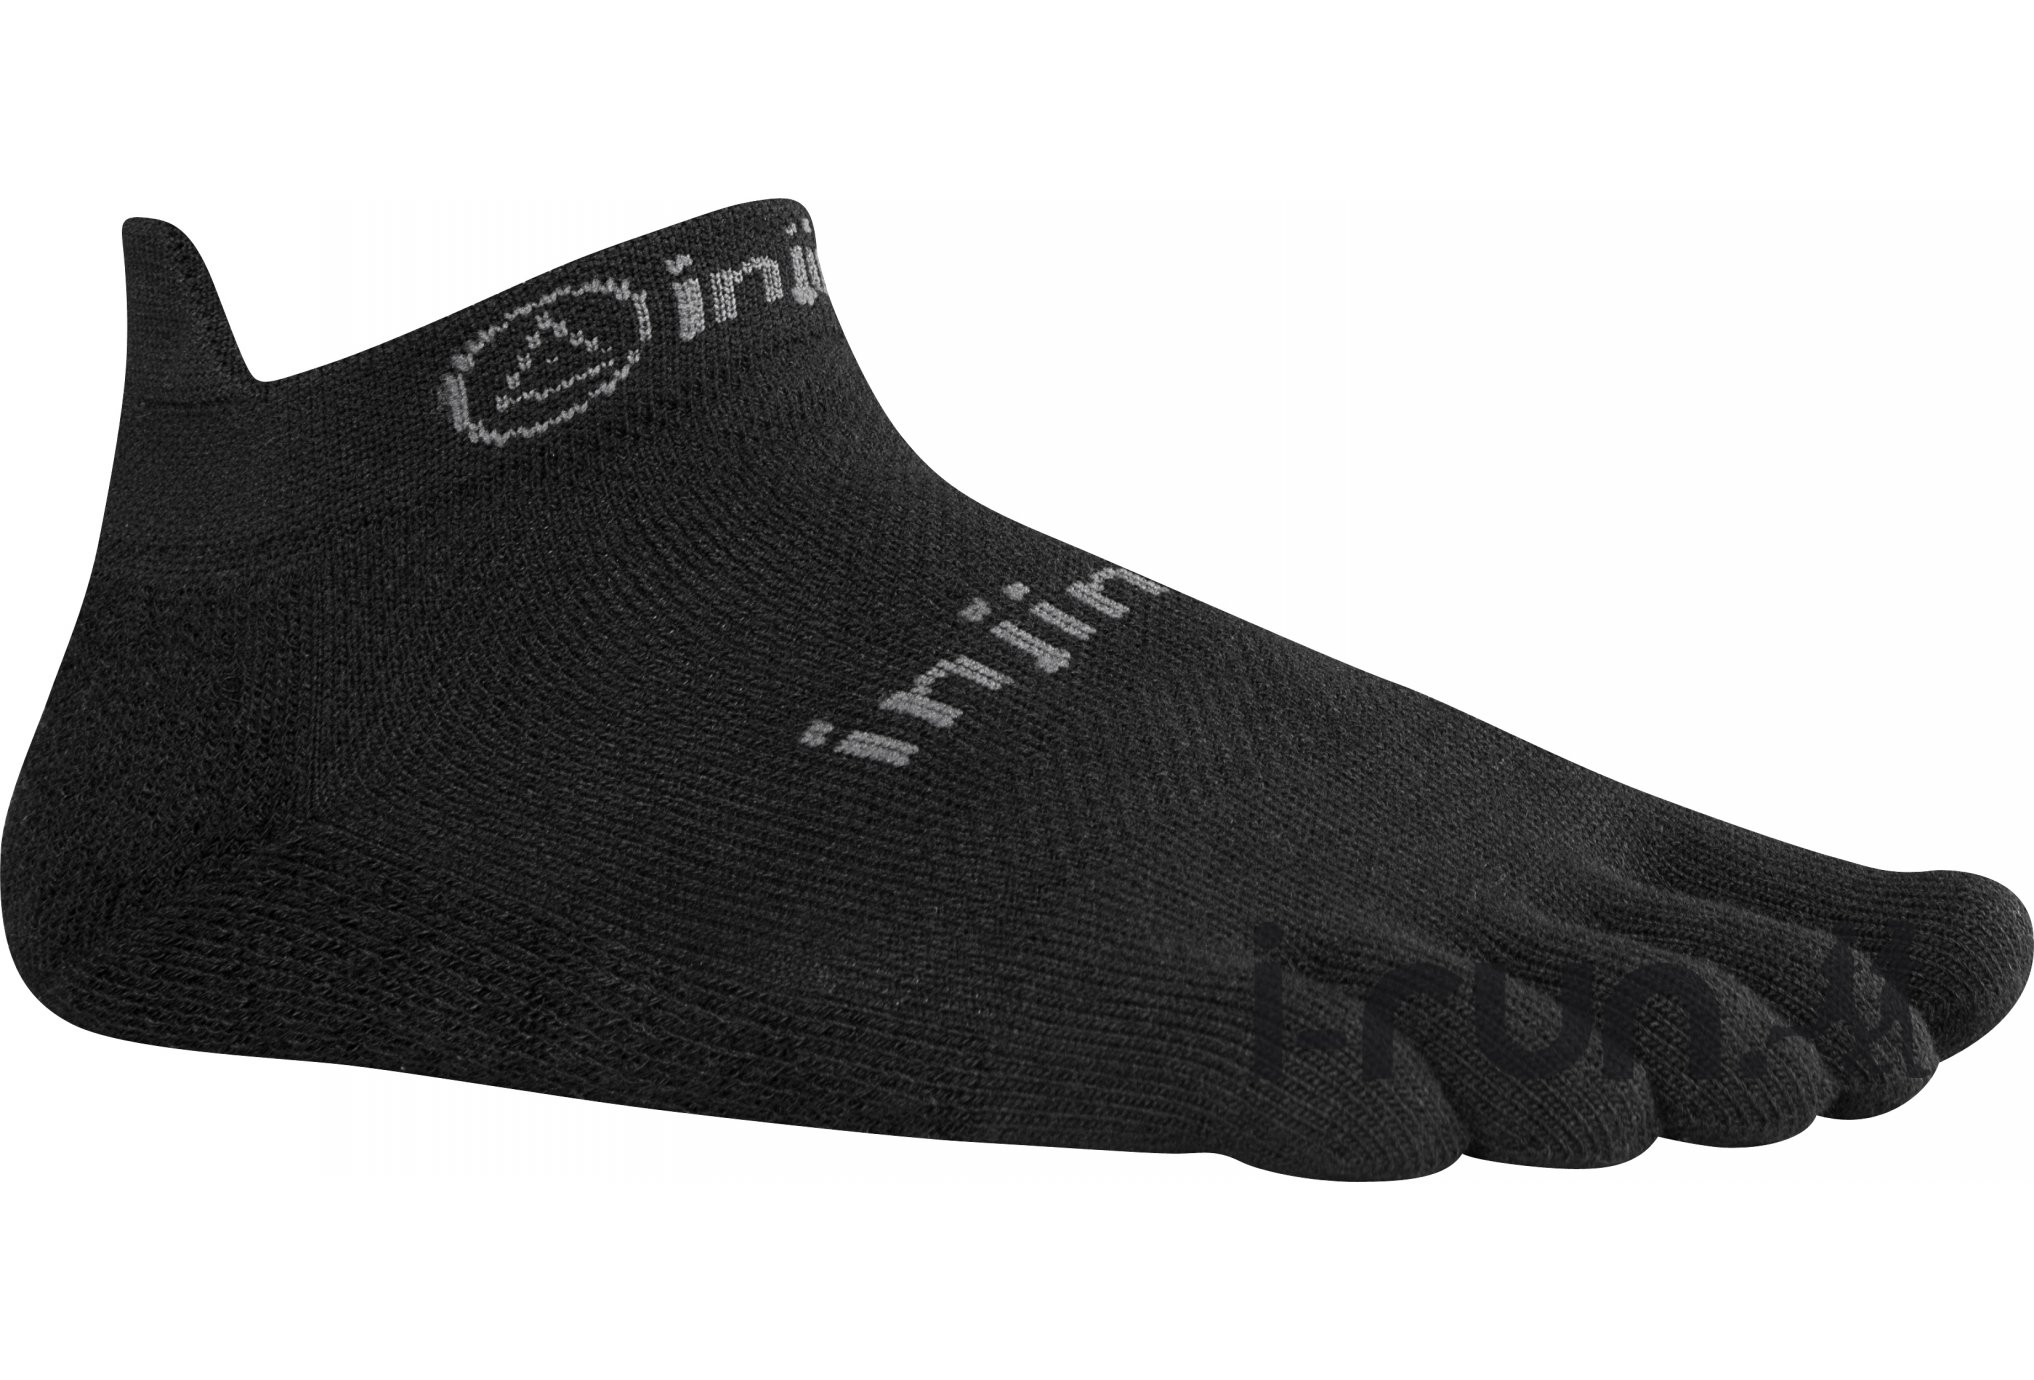 Injinji Chaussettes Run Original Weight No-Show Chaussettes